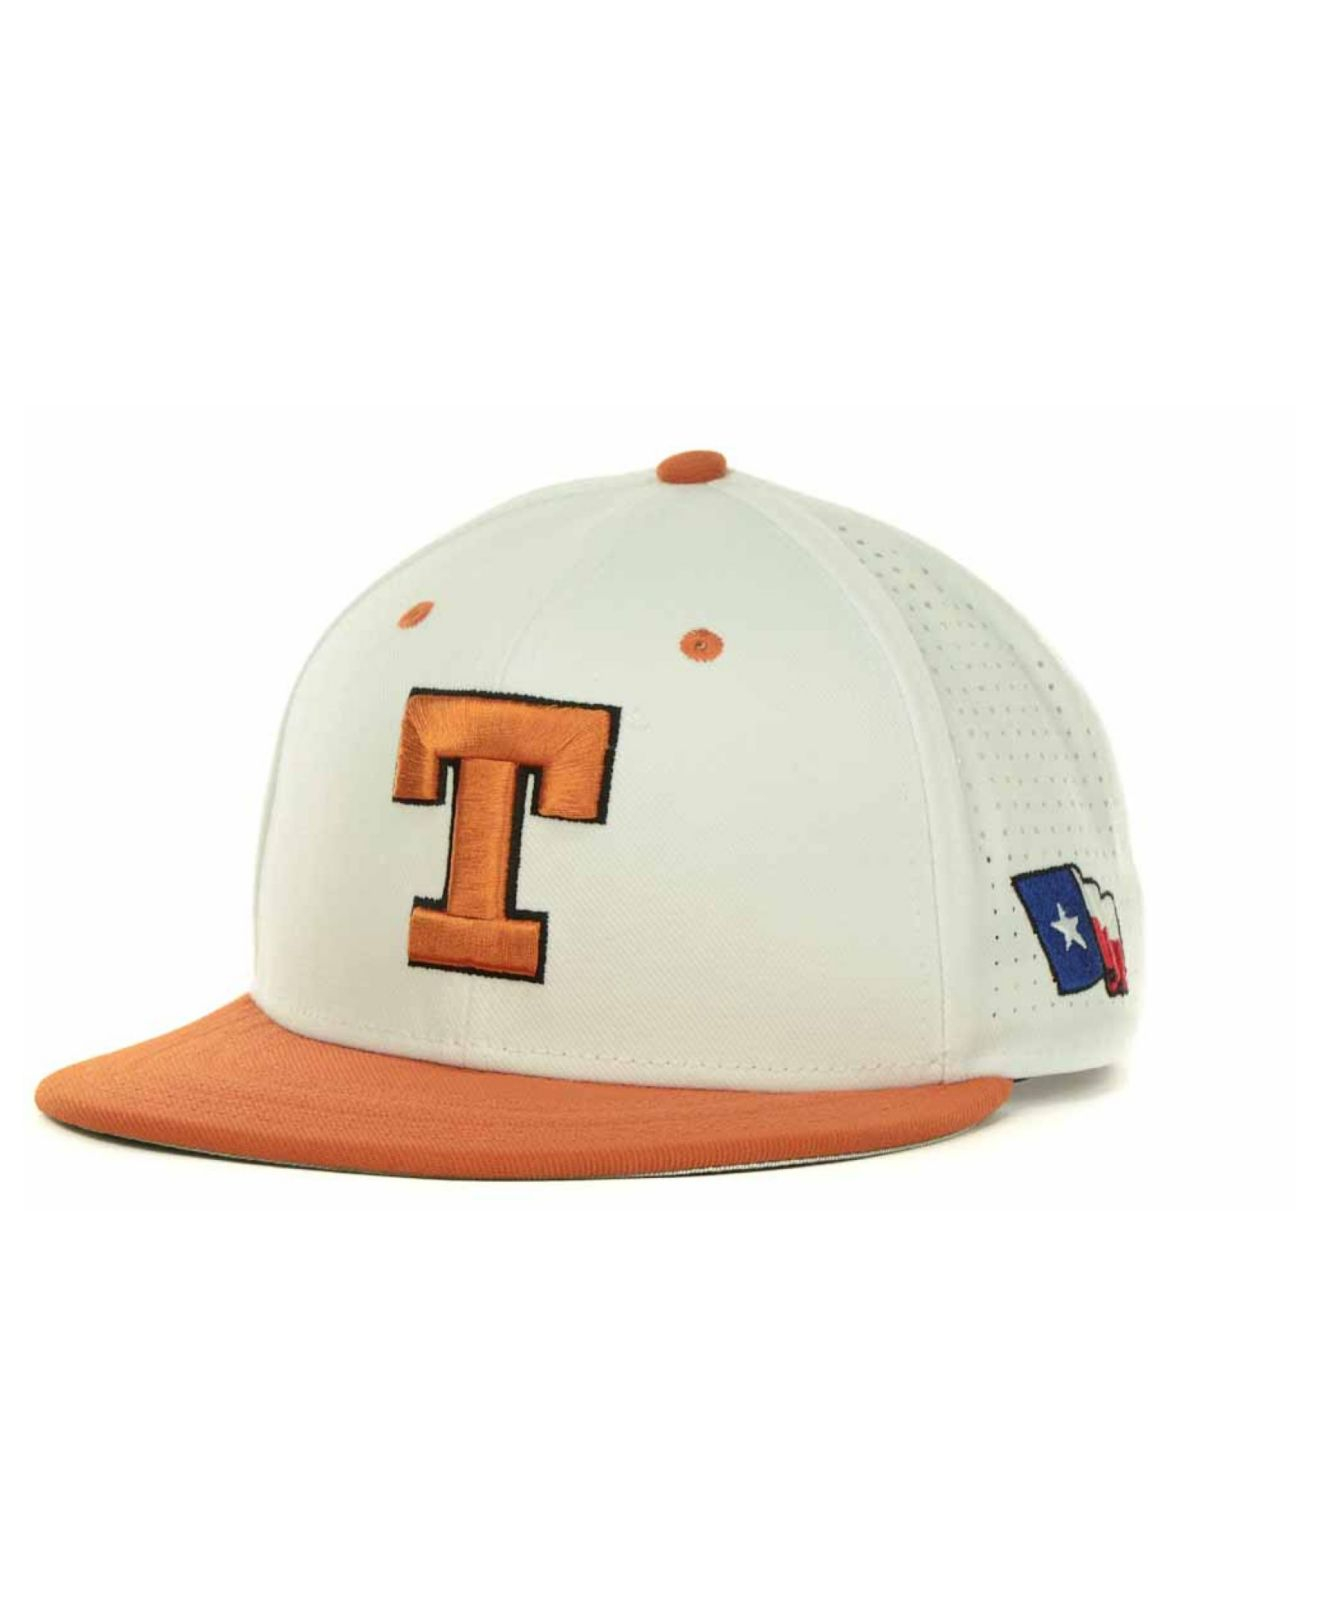 30e8da59a34 buy nike longhorn texas hat 1f043 8c572  new arrivals lyst nike texas  longhorns ncaa authentic vapor fitted cap in white 1c5a6 2f4d2